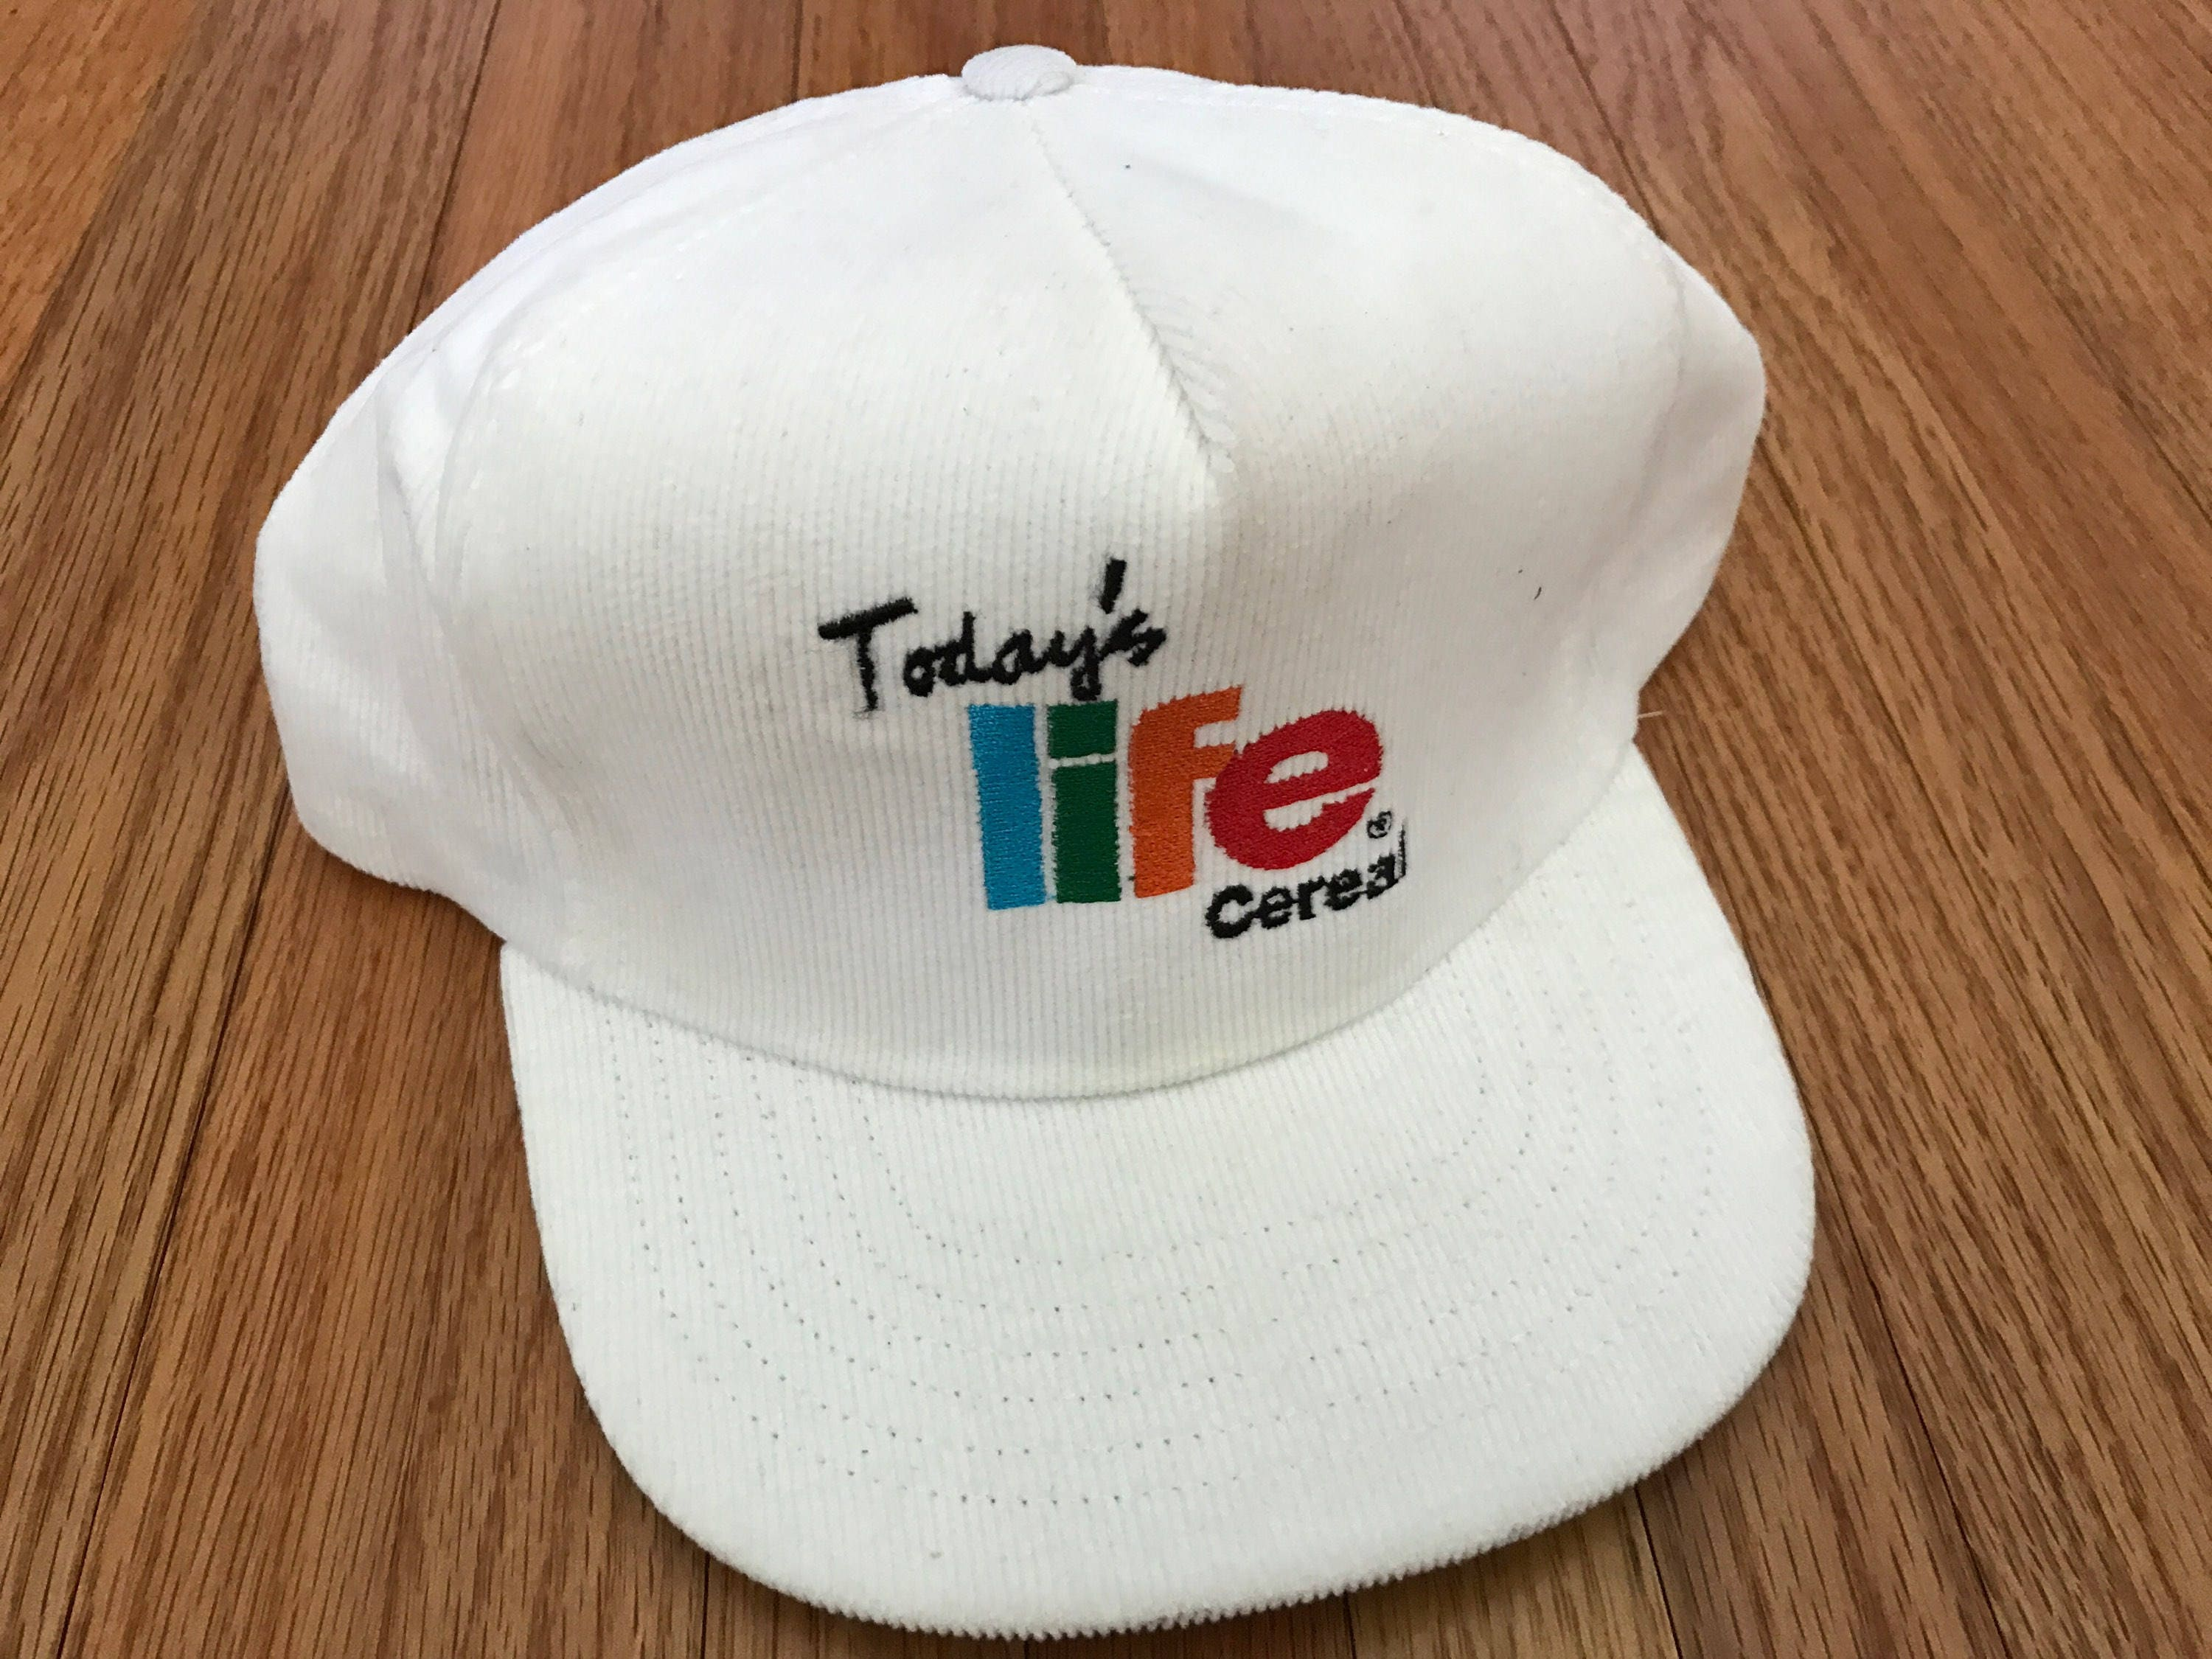 61a8254ac09 Vintage 80s Today s Life Cereal White Corduroy Snapback Hat